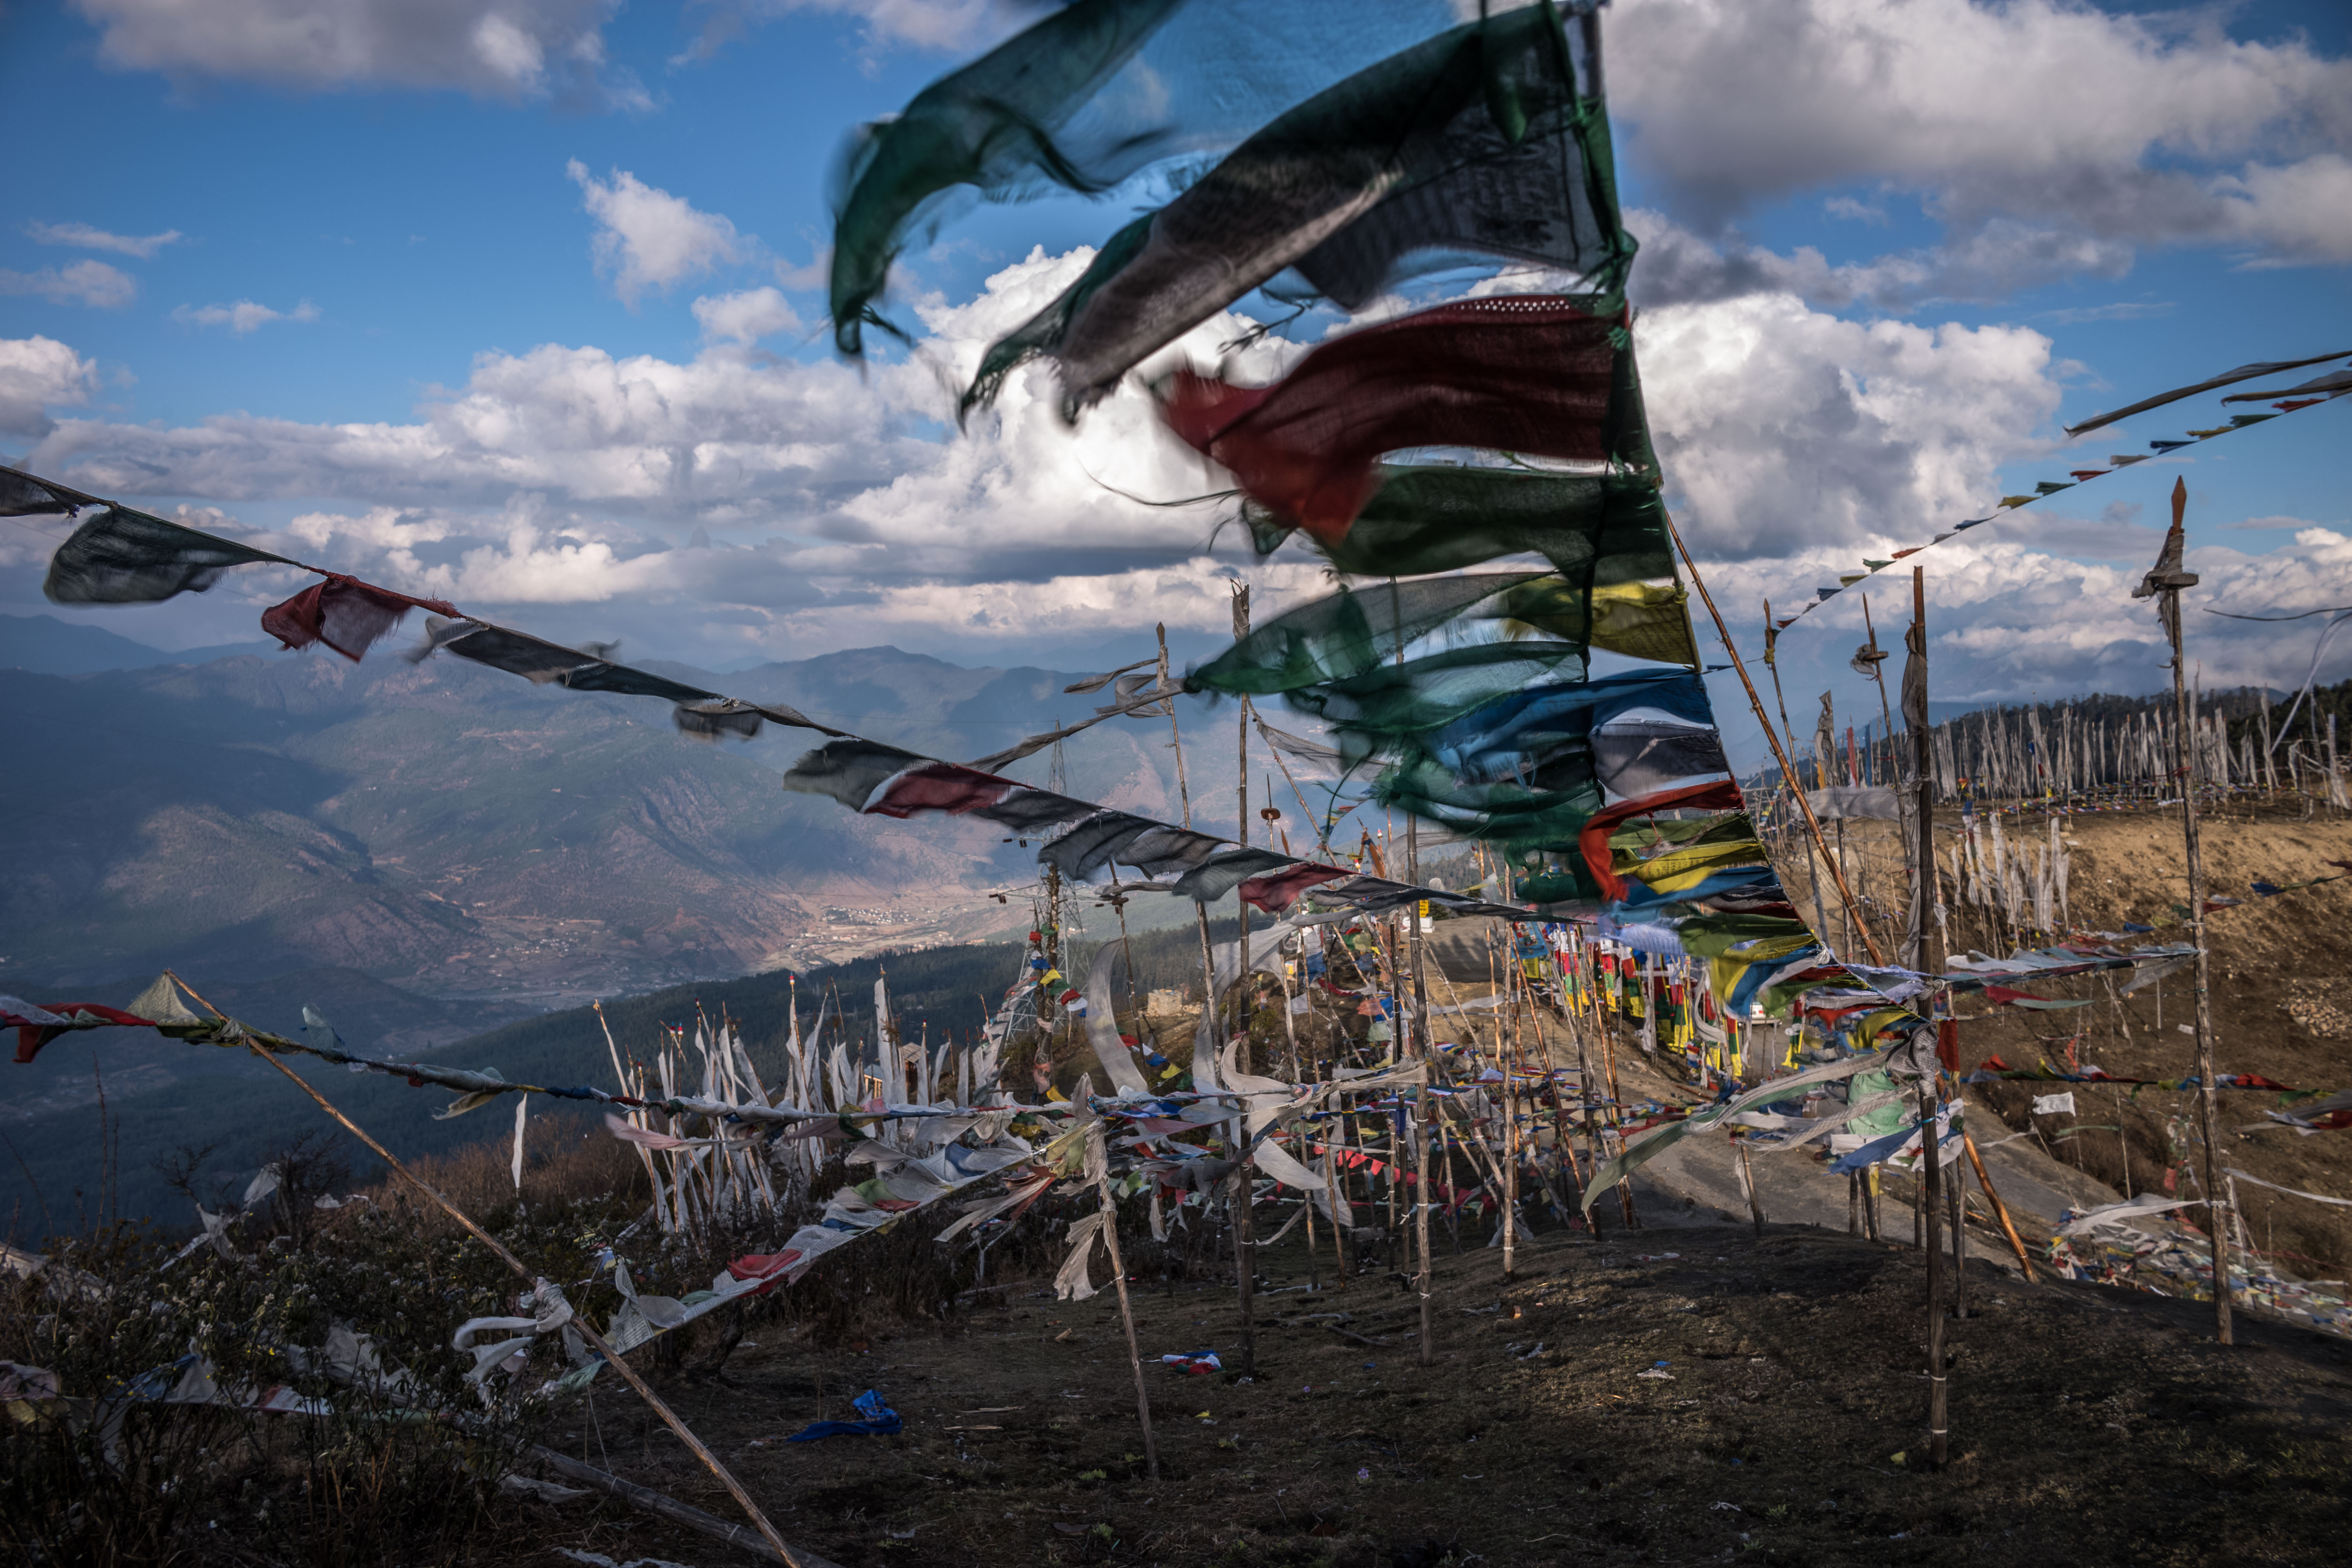 Prayer flags at Chelela Pass